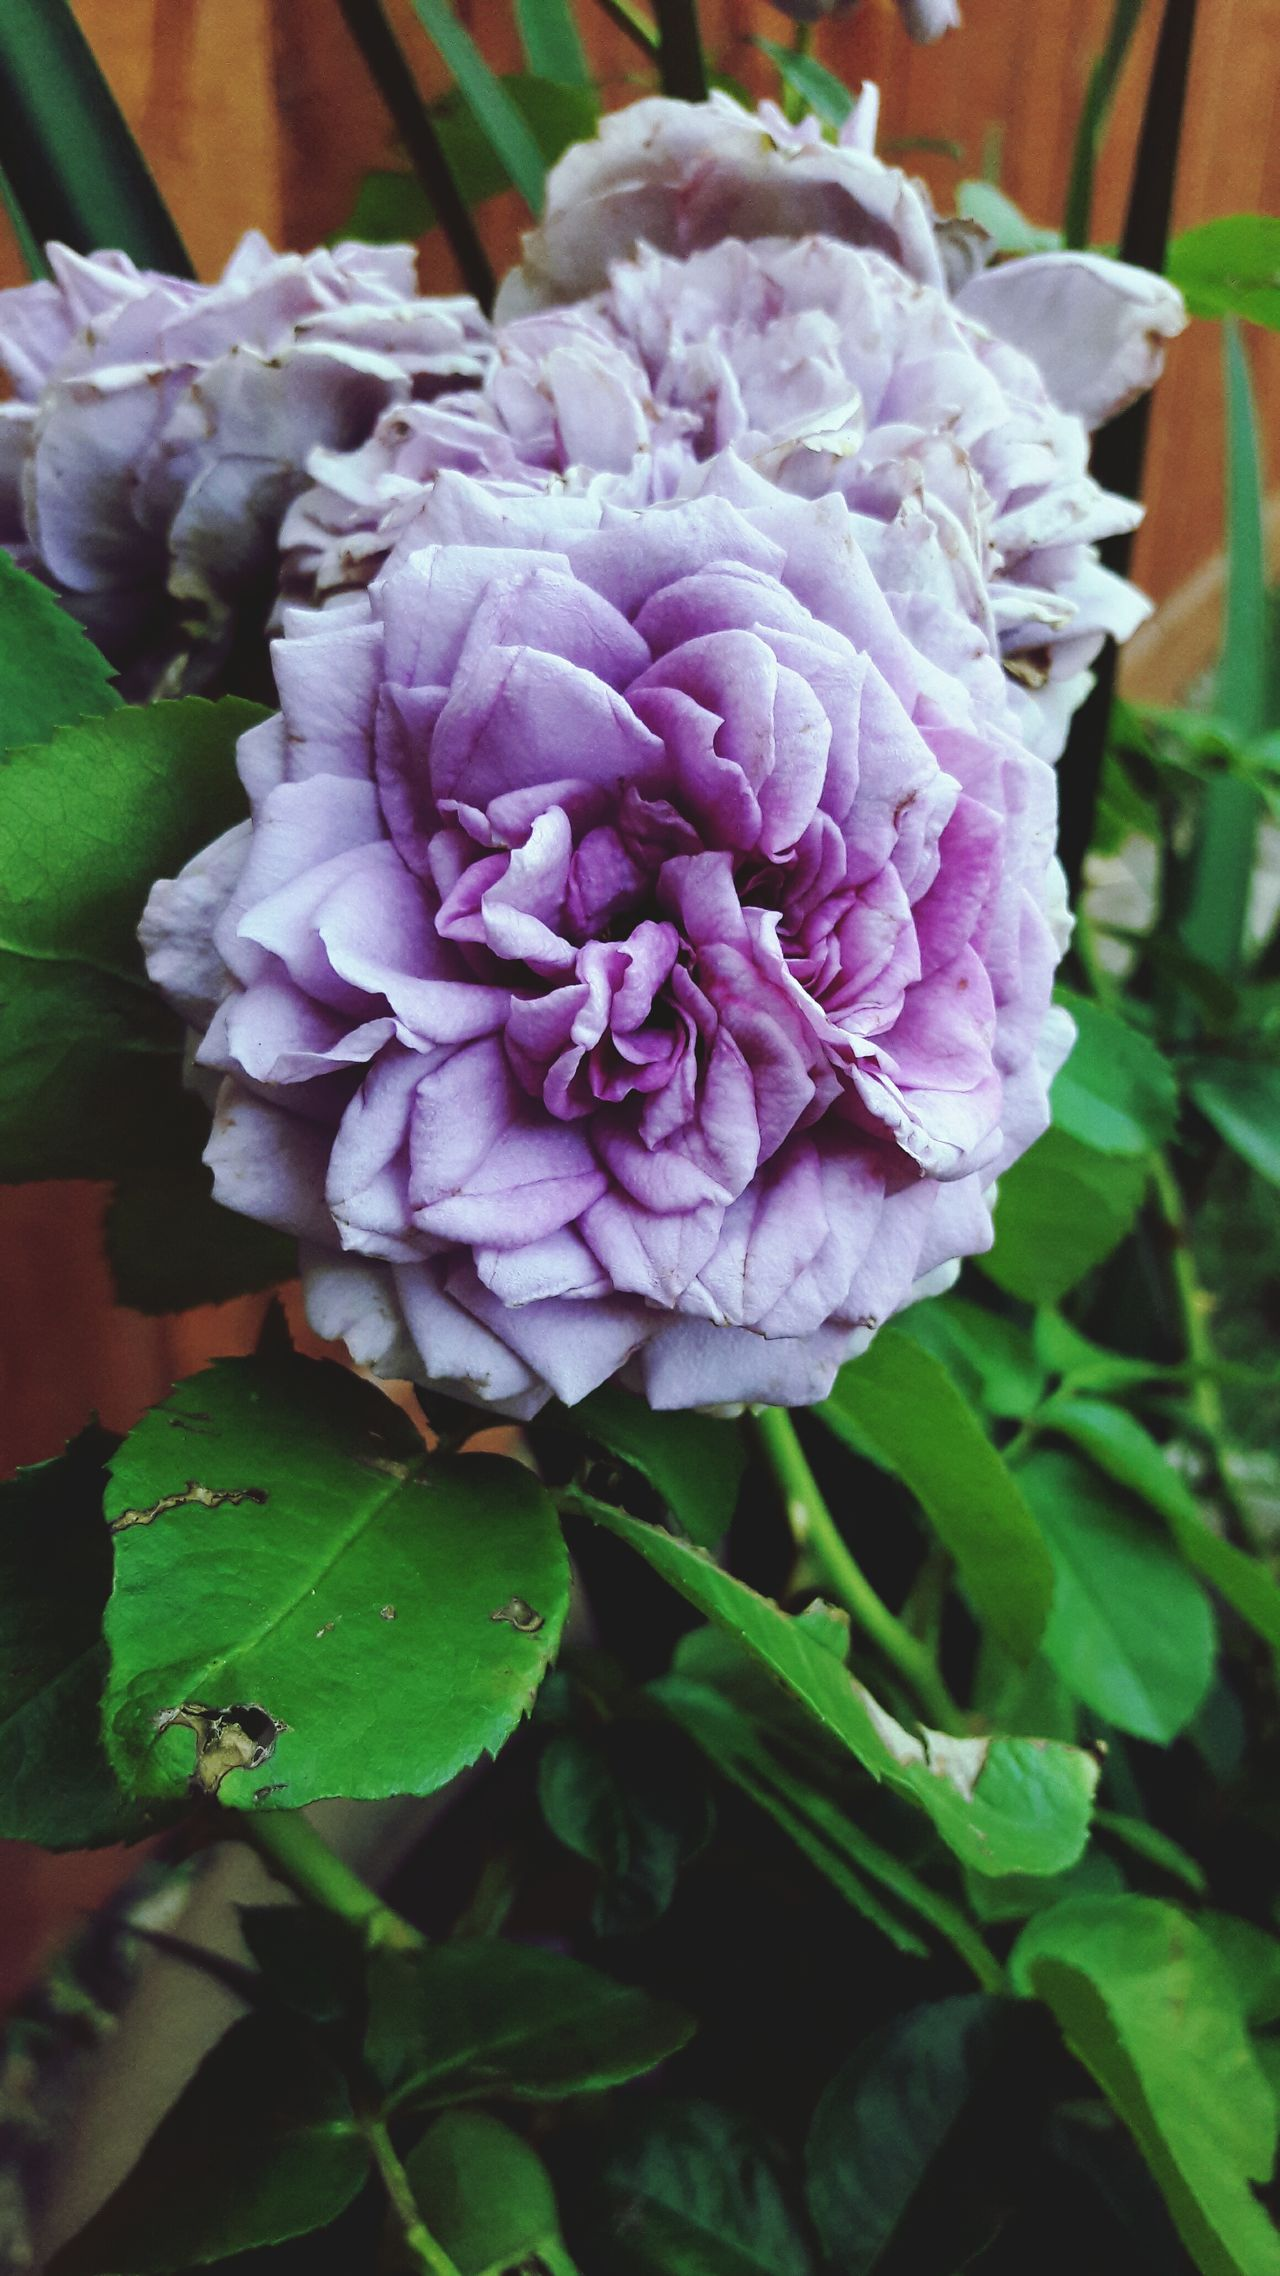 Flower Fragility Nature Petal Beauty In Nature Flower Head Leaf Plant Close-up Purple No People Growth Day Freshness Peony  Outdoors